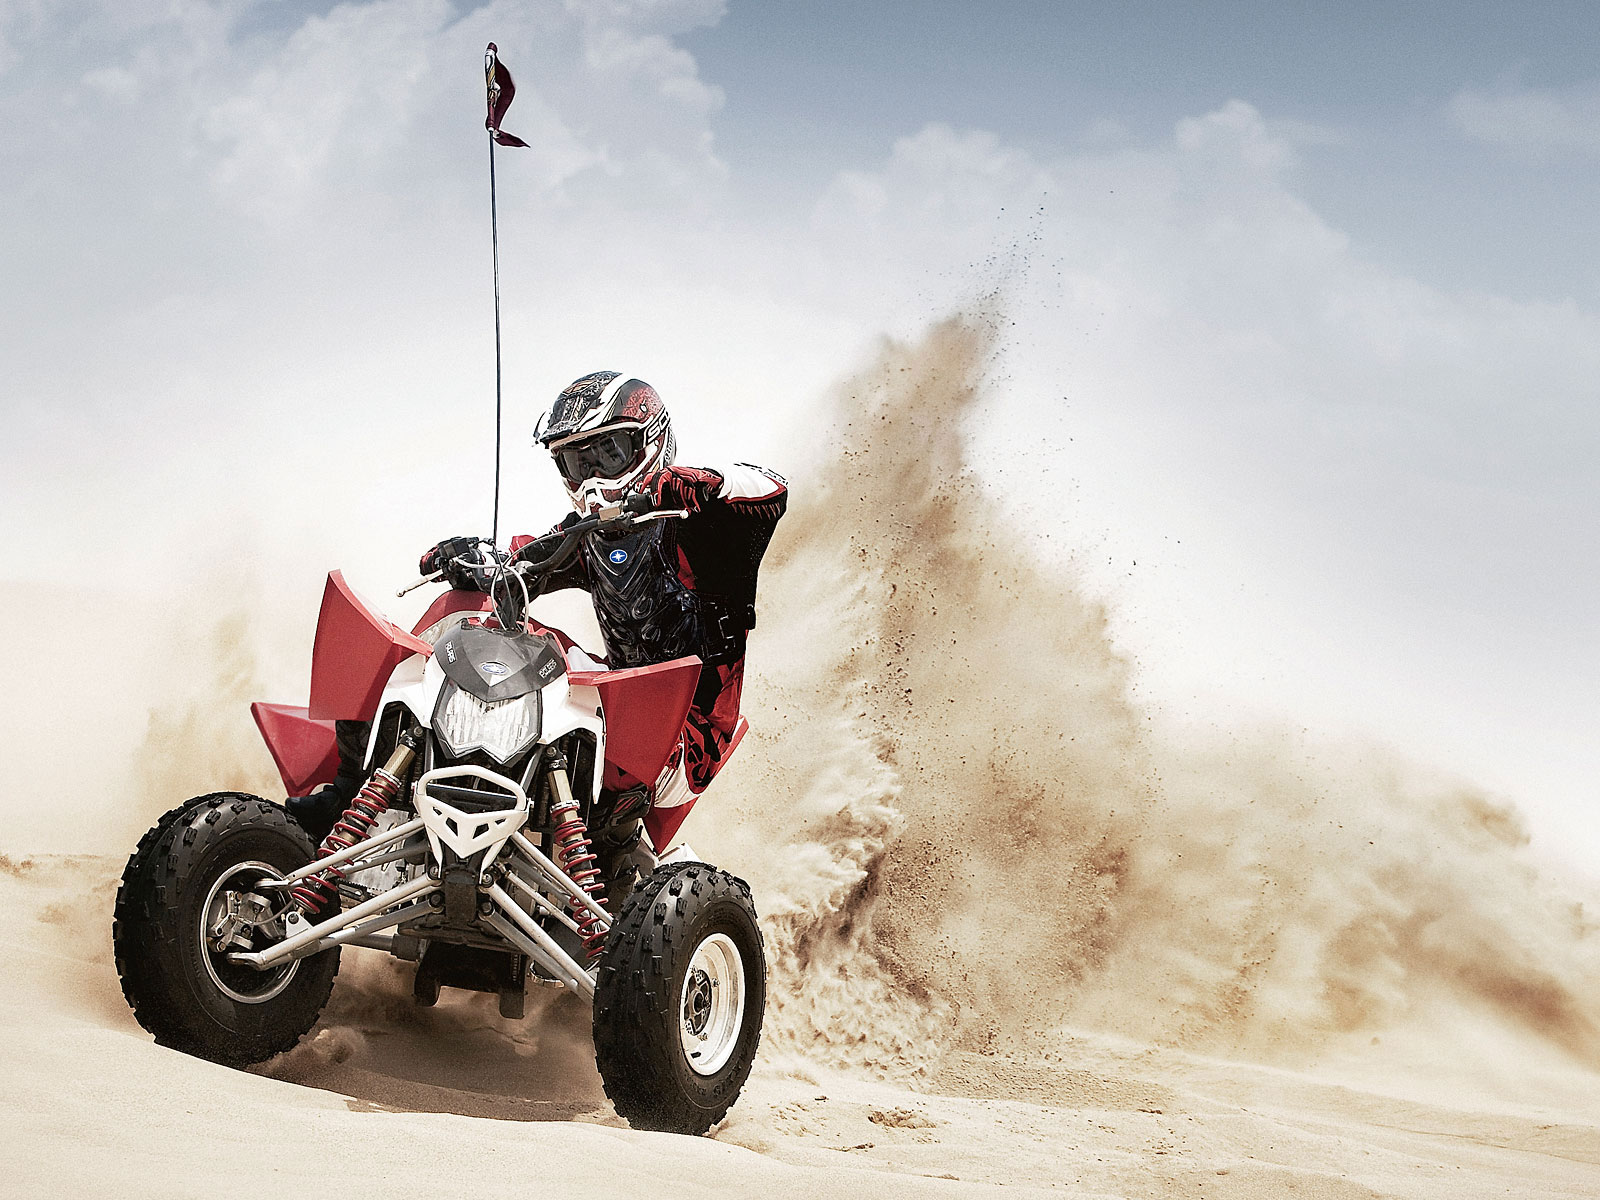 honda atv full high quality wallpaper